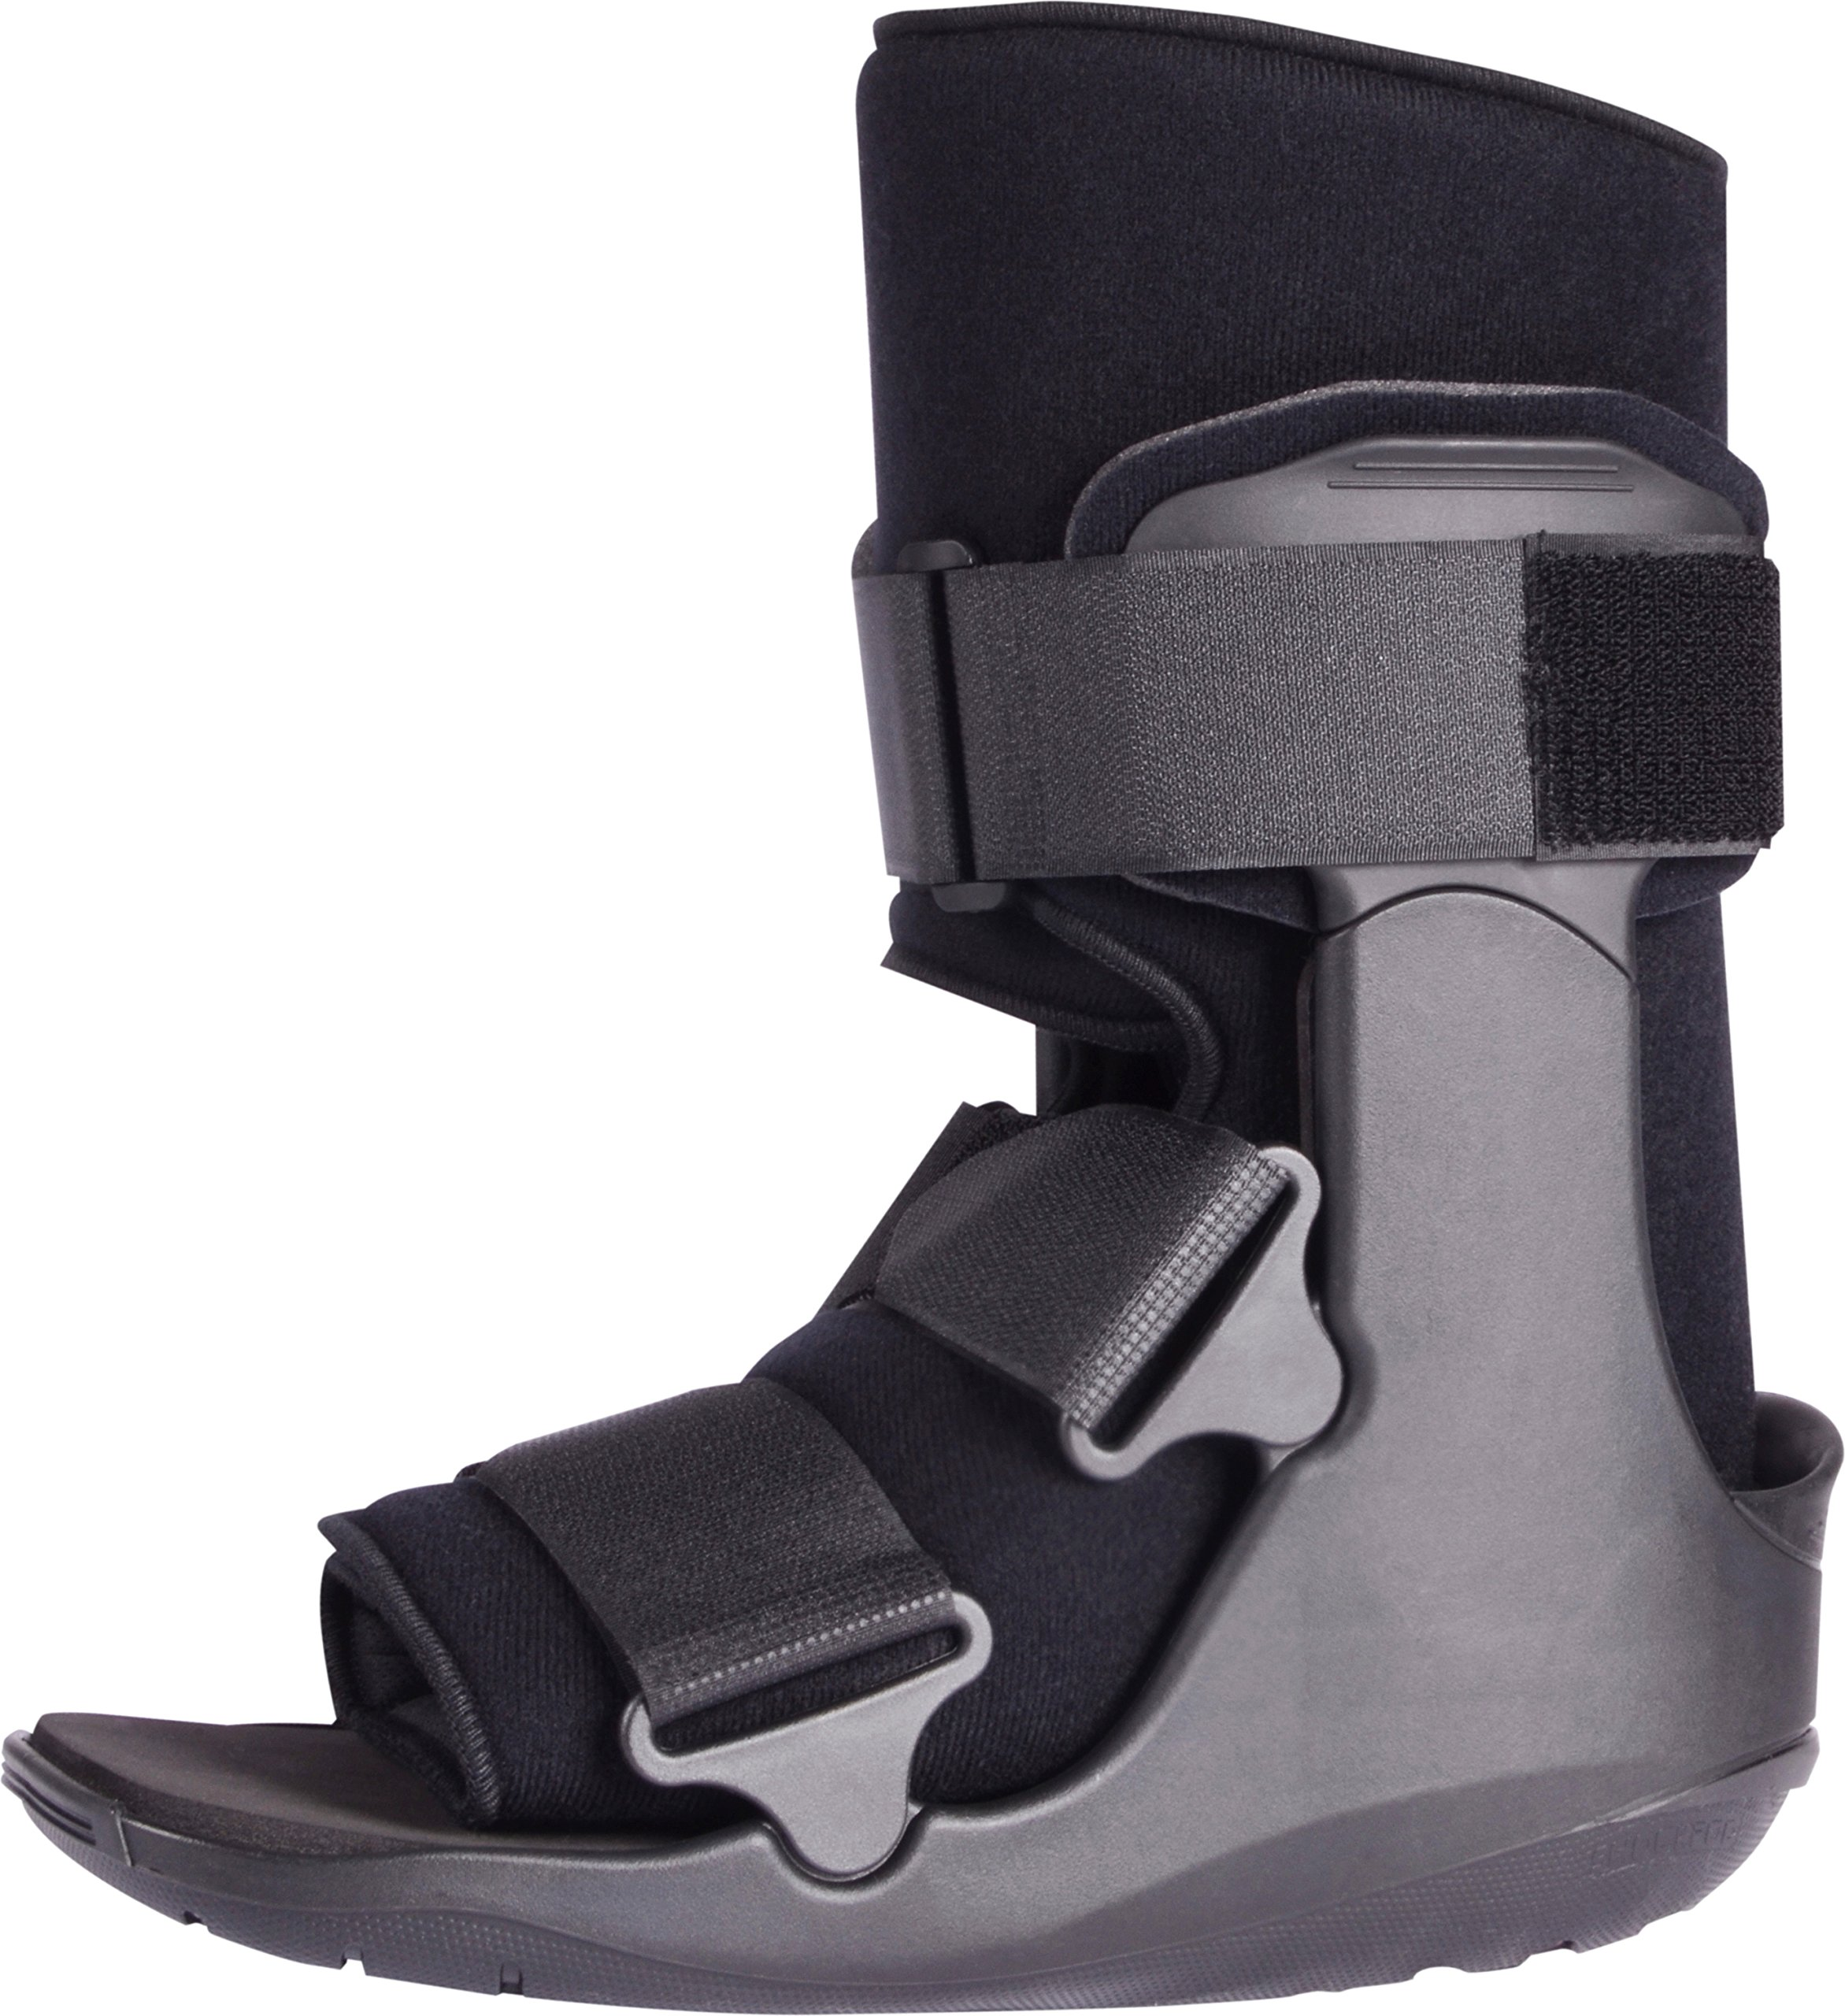 ProCare XcelTrax Ankle Walker Brace / Walking Boot, Medium by ProCare